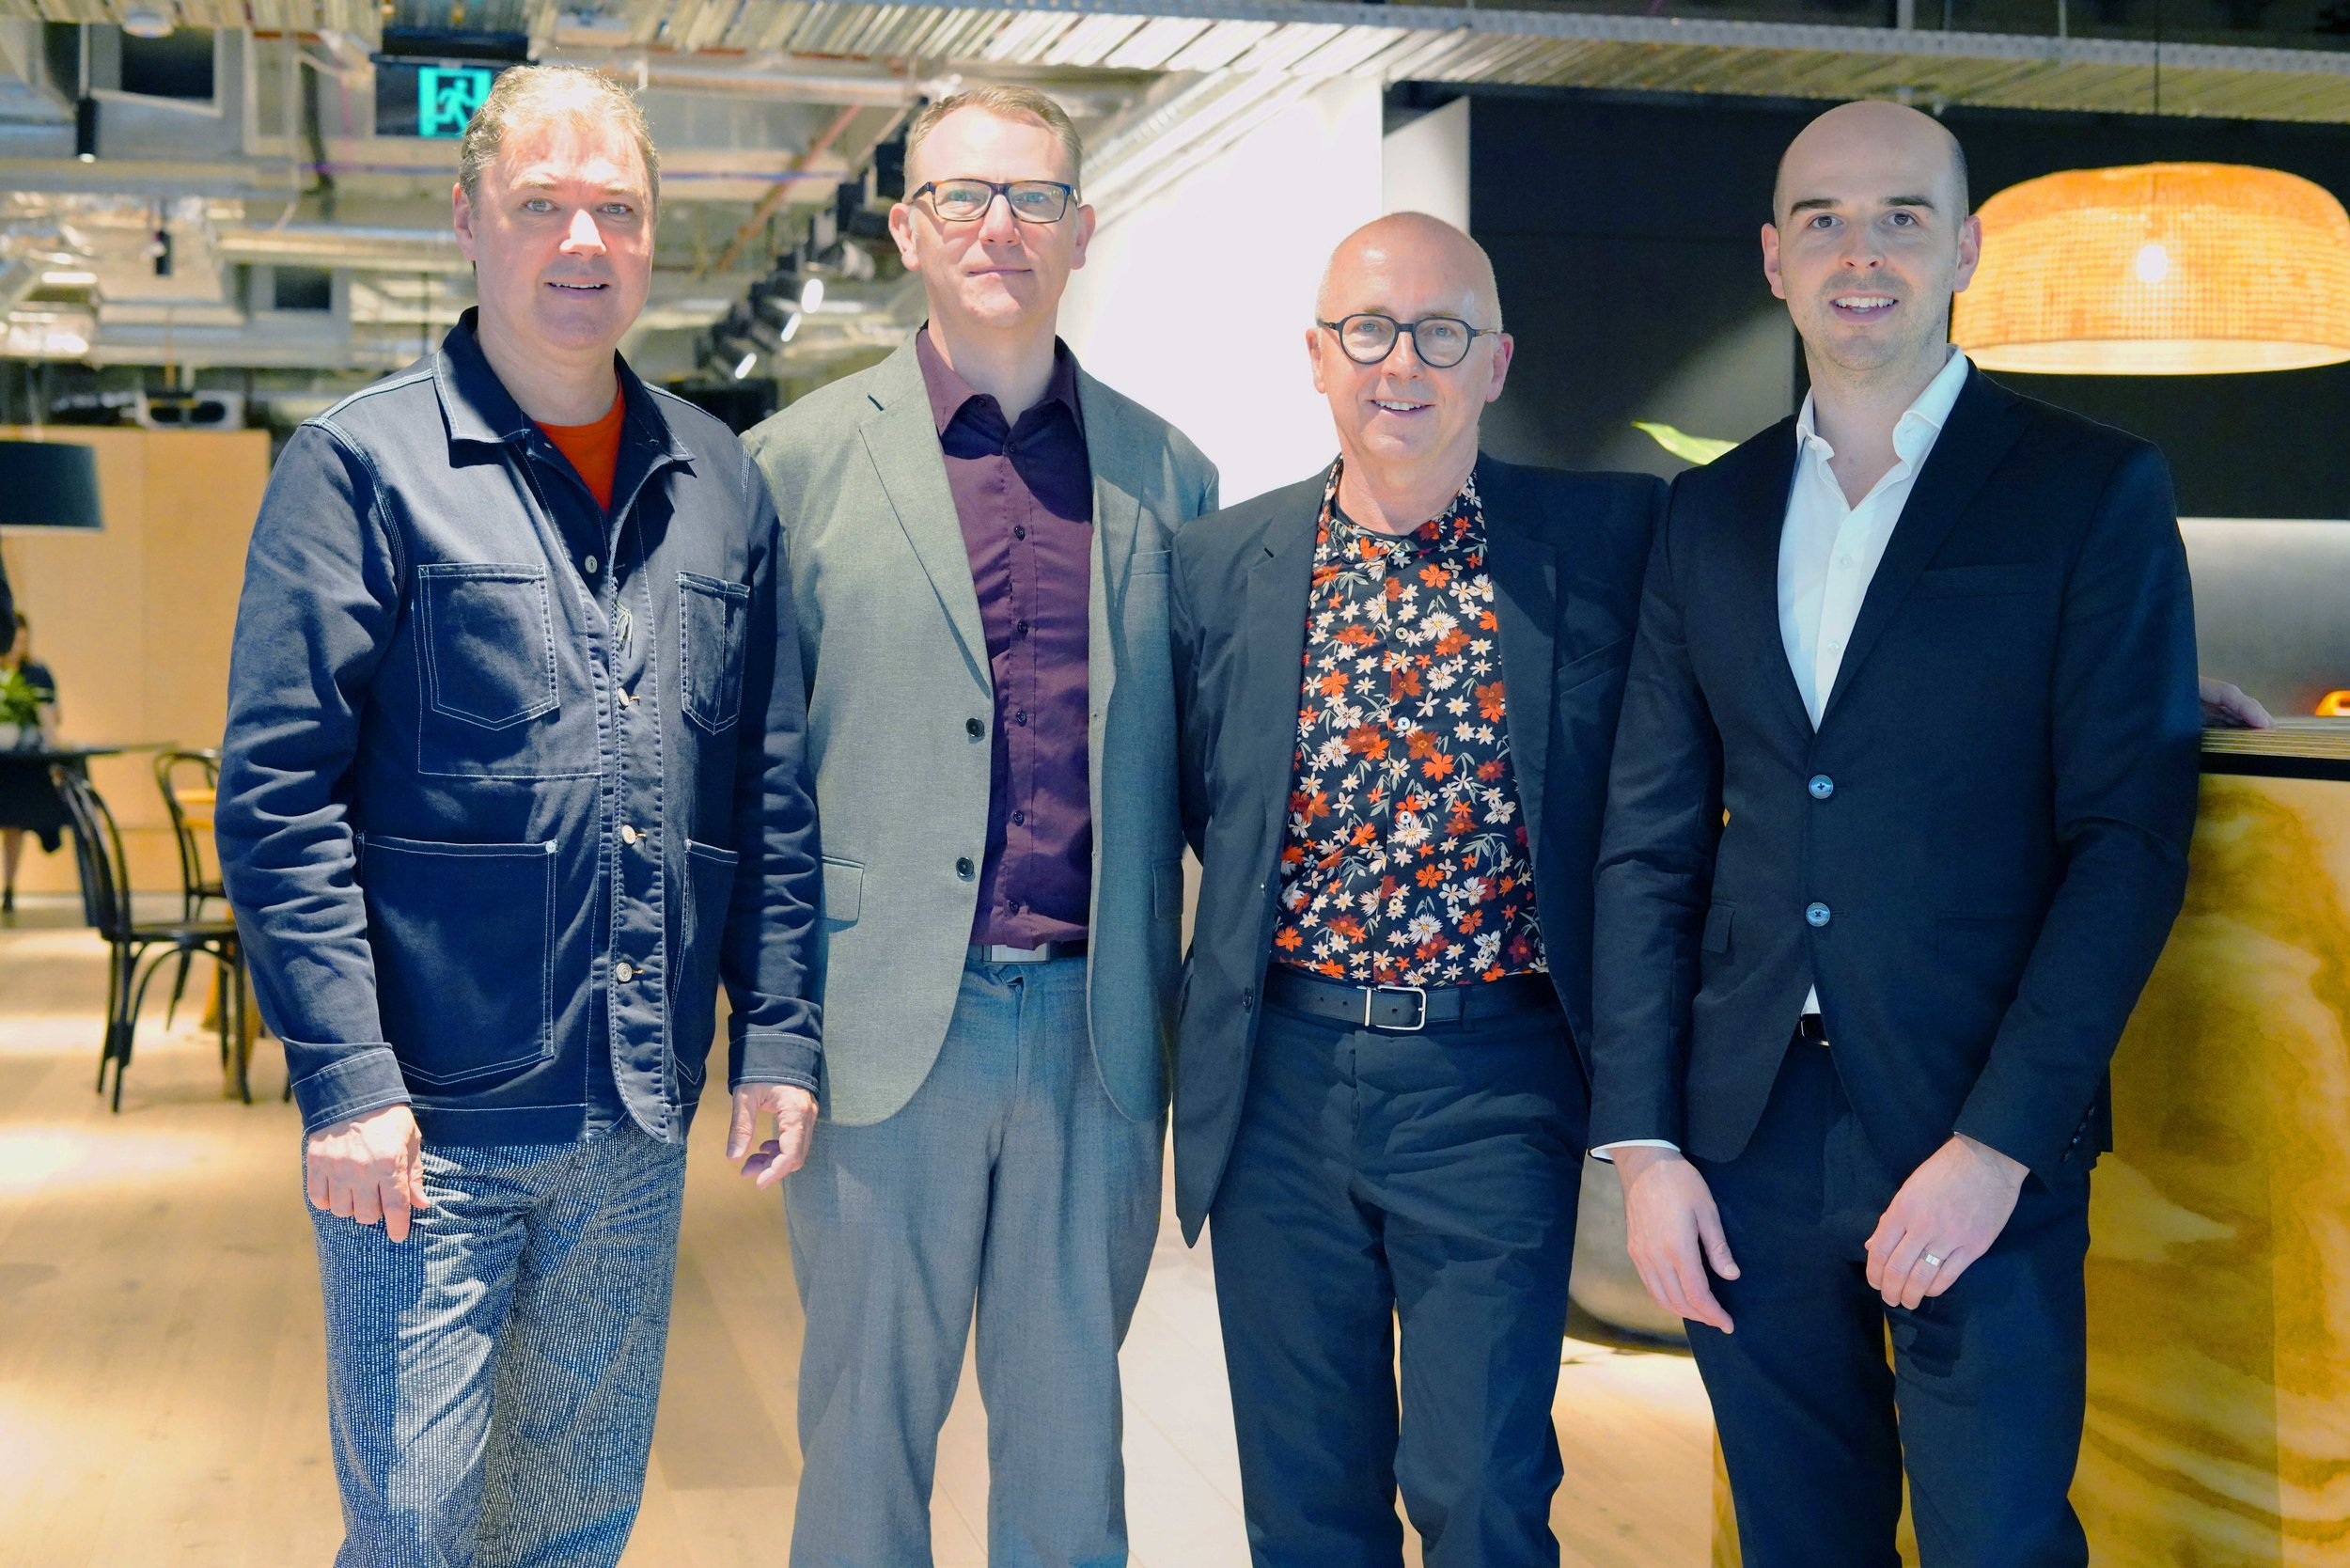 Futurespace Leadership Team (Left to Right), Gavin Harris, Jerad Tinnin, Stephen Minnett, Joseph Daly. Angela Ferguson (Absent)